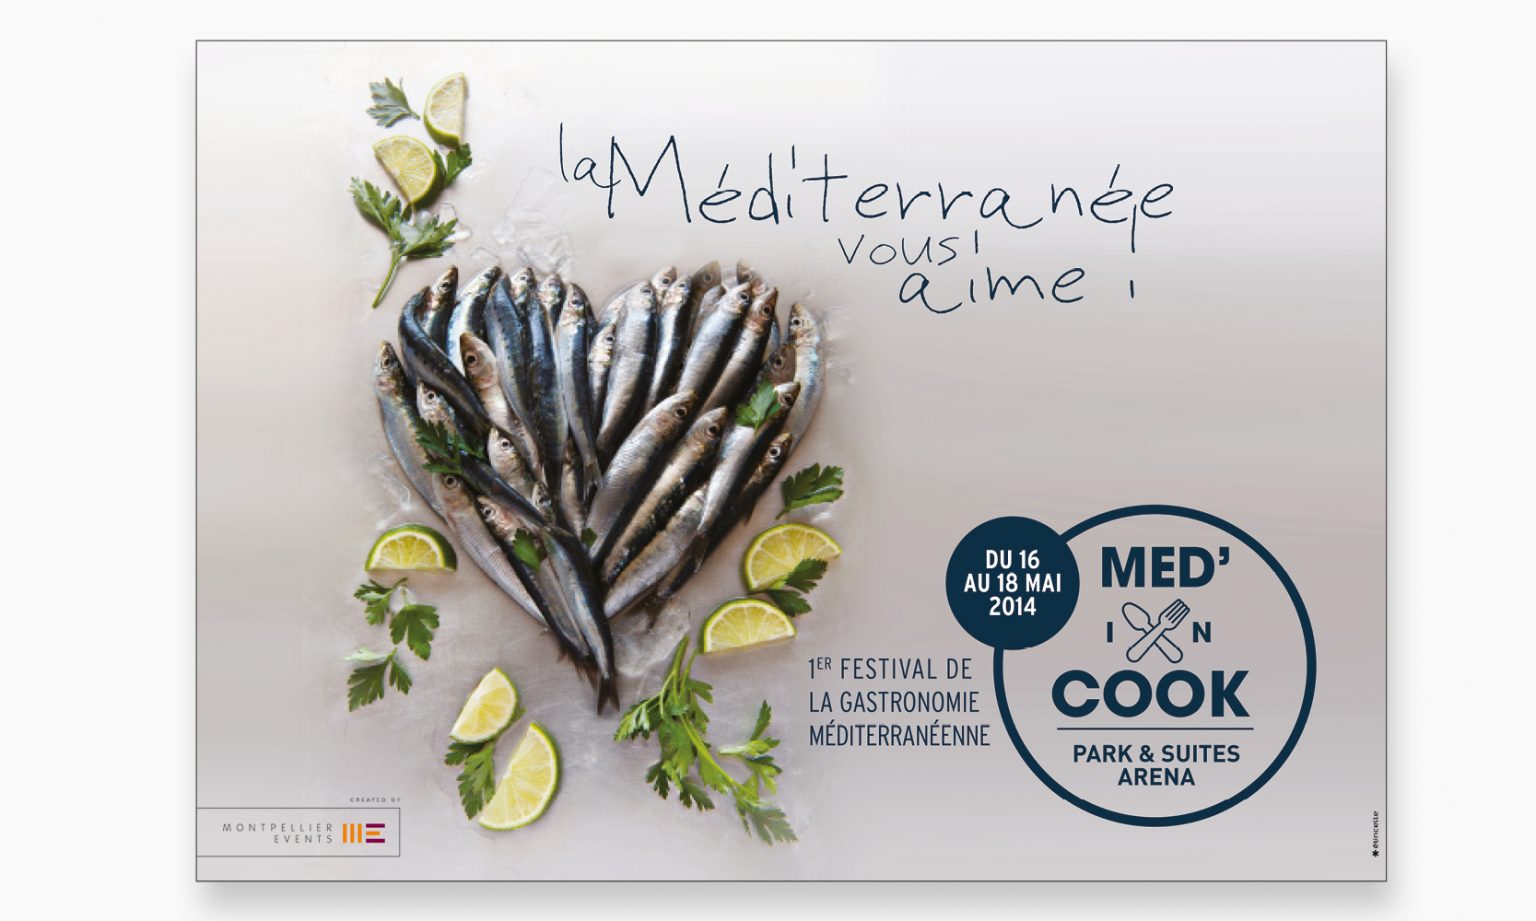 Montpellier-events_campagne-made-in-cook_4